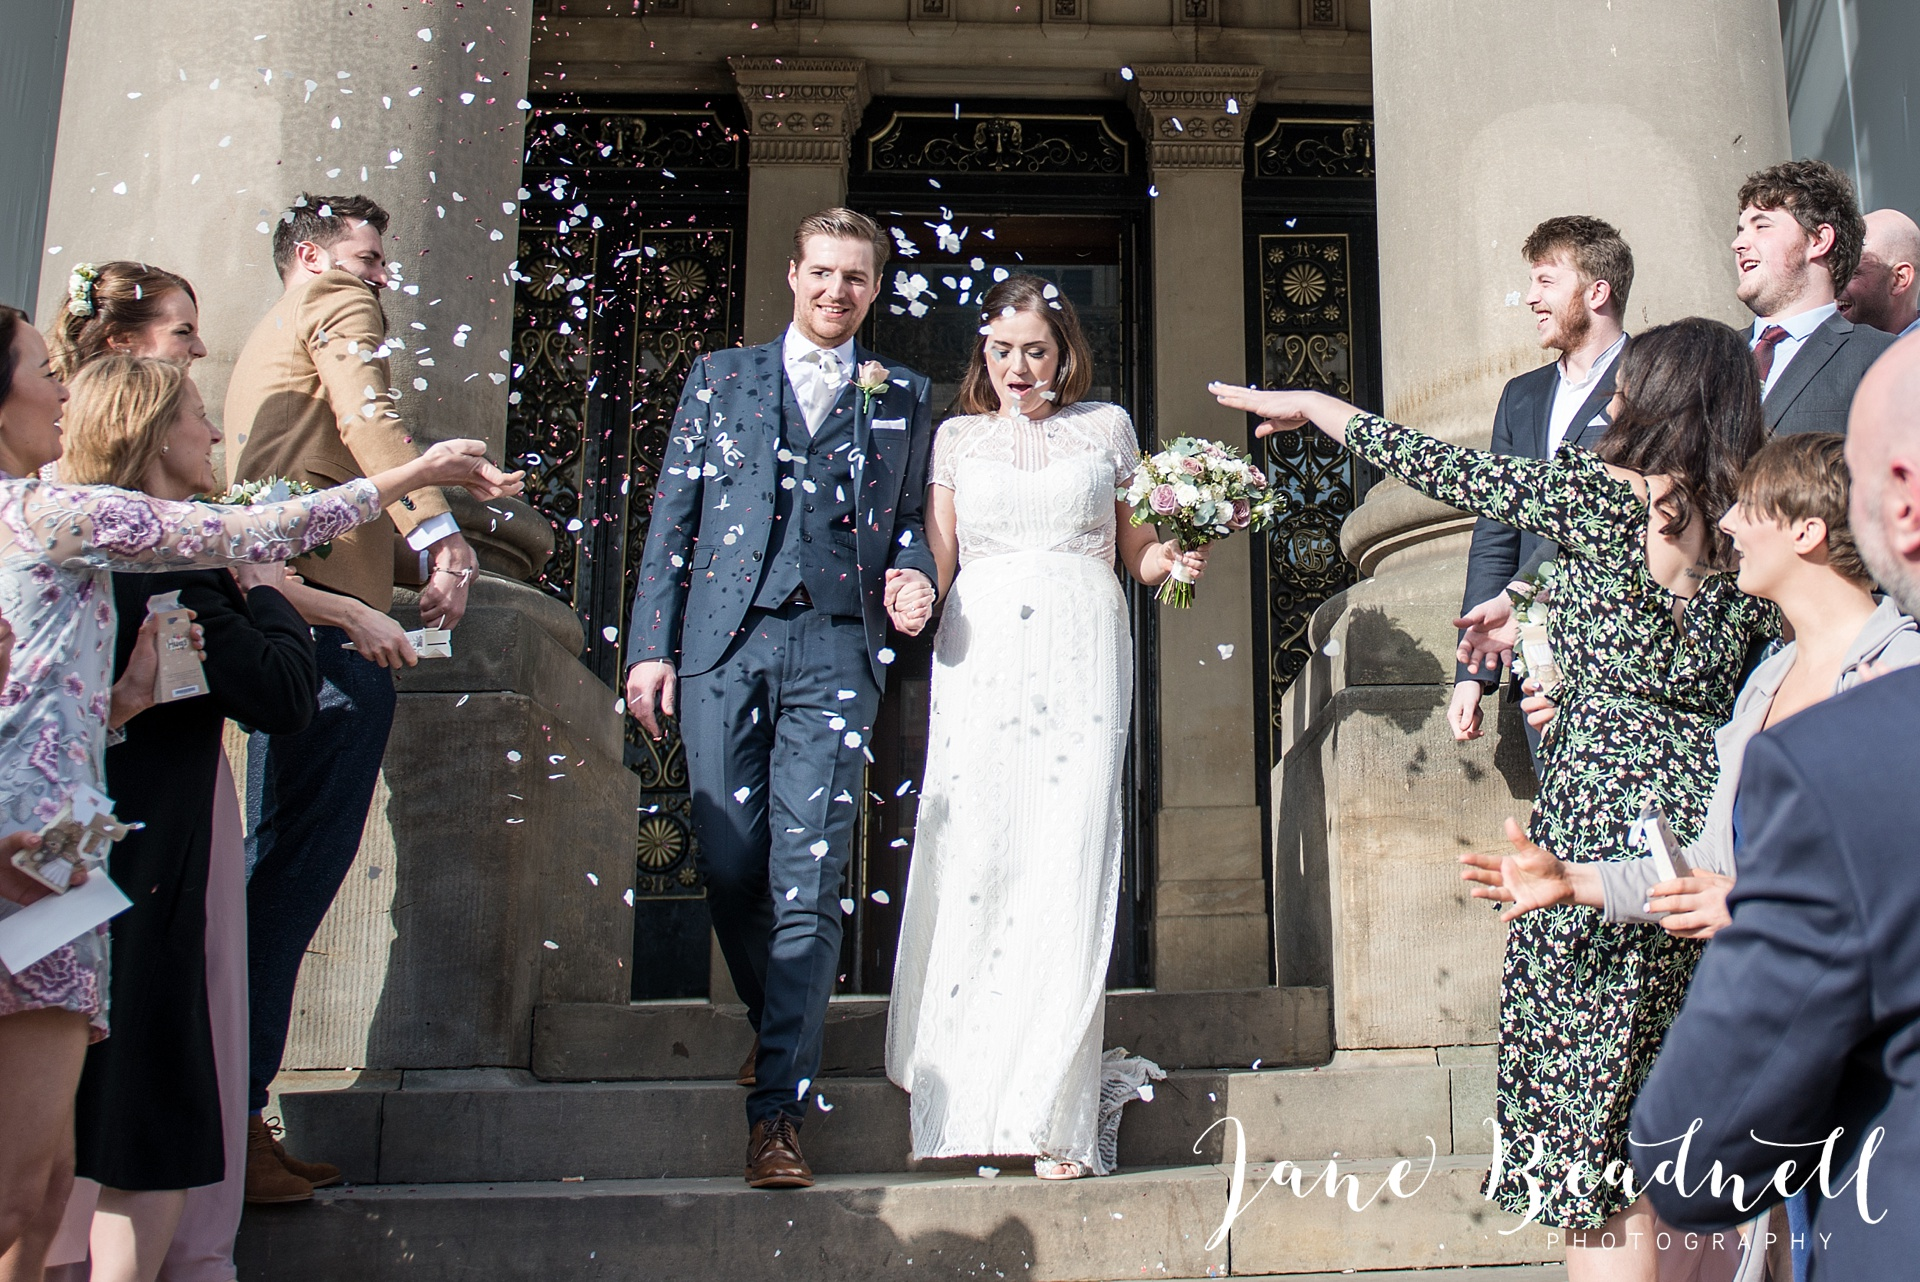 Wedding photography Cross Keys Leeds Wedding Jane Beadnell Photography_0043